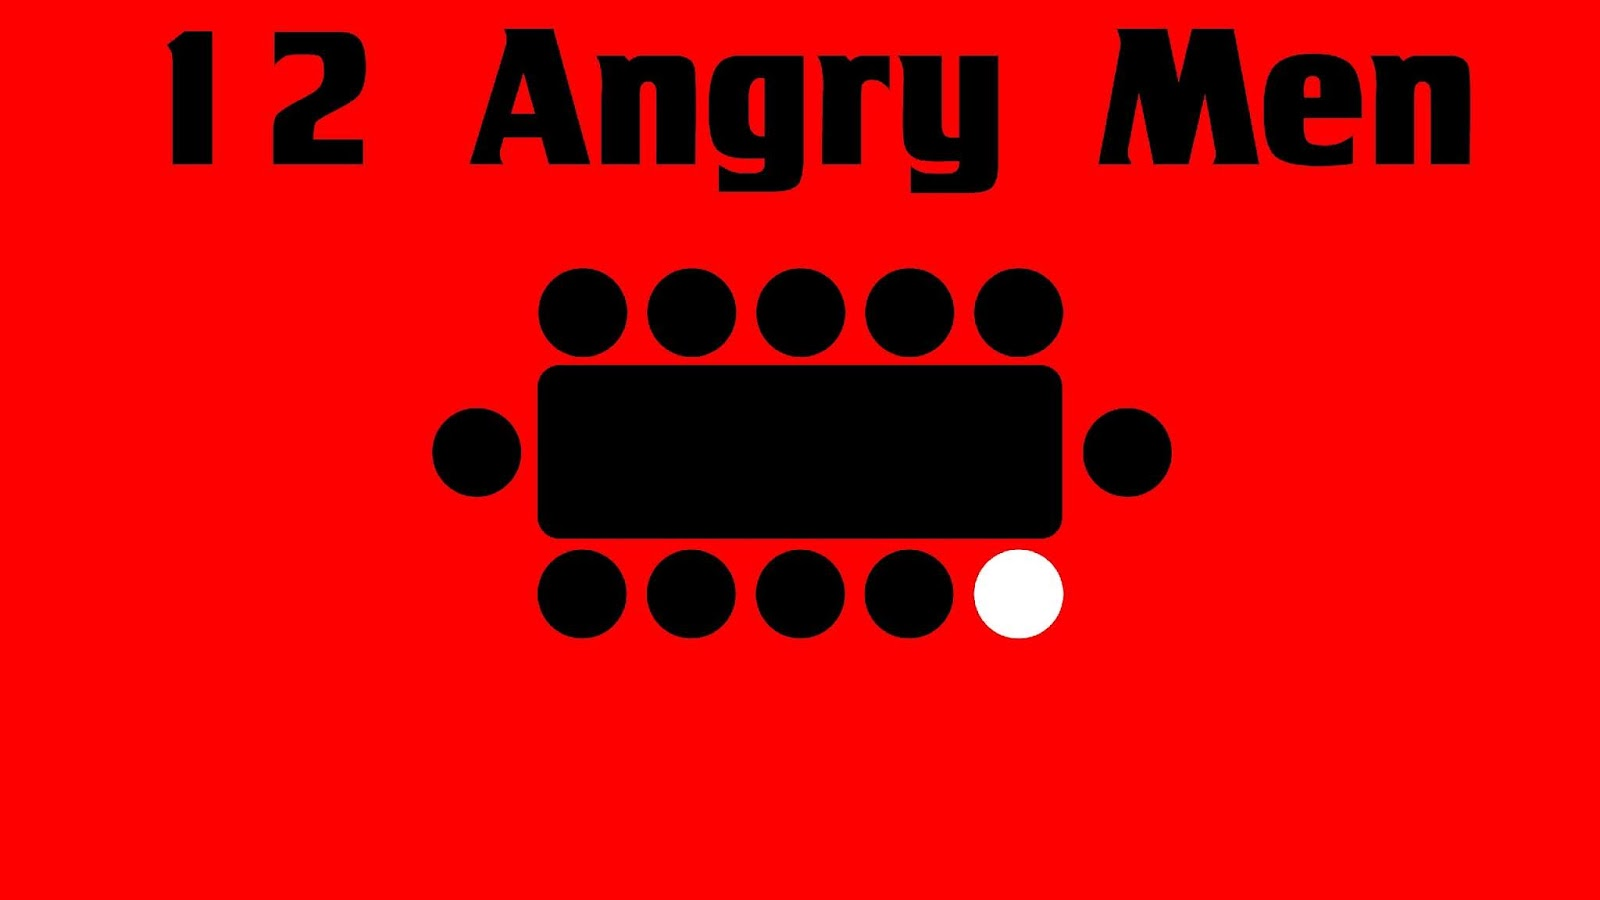 12 Angry Men HD Wallpapers download